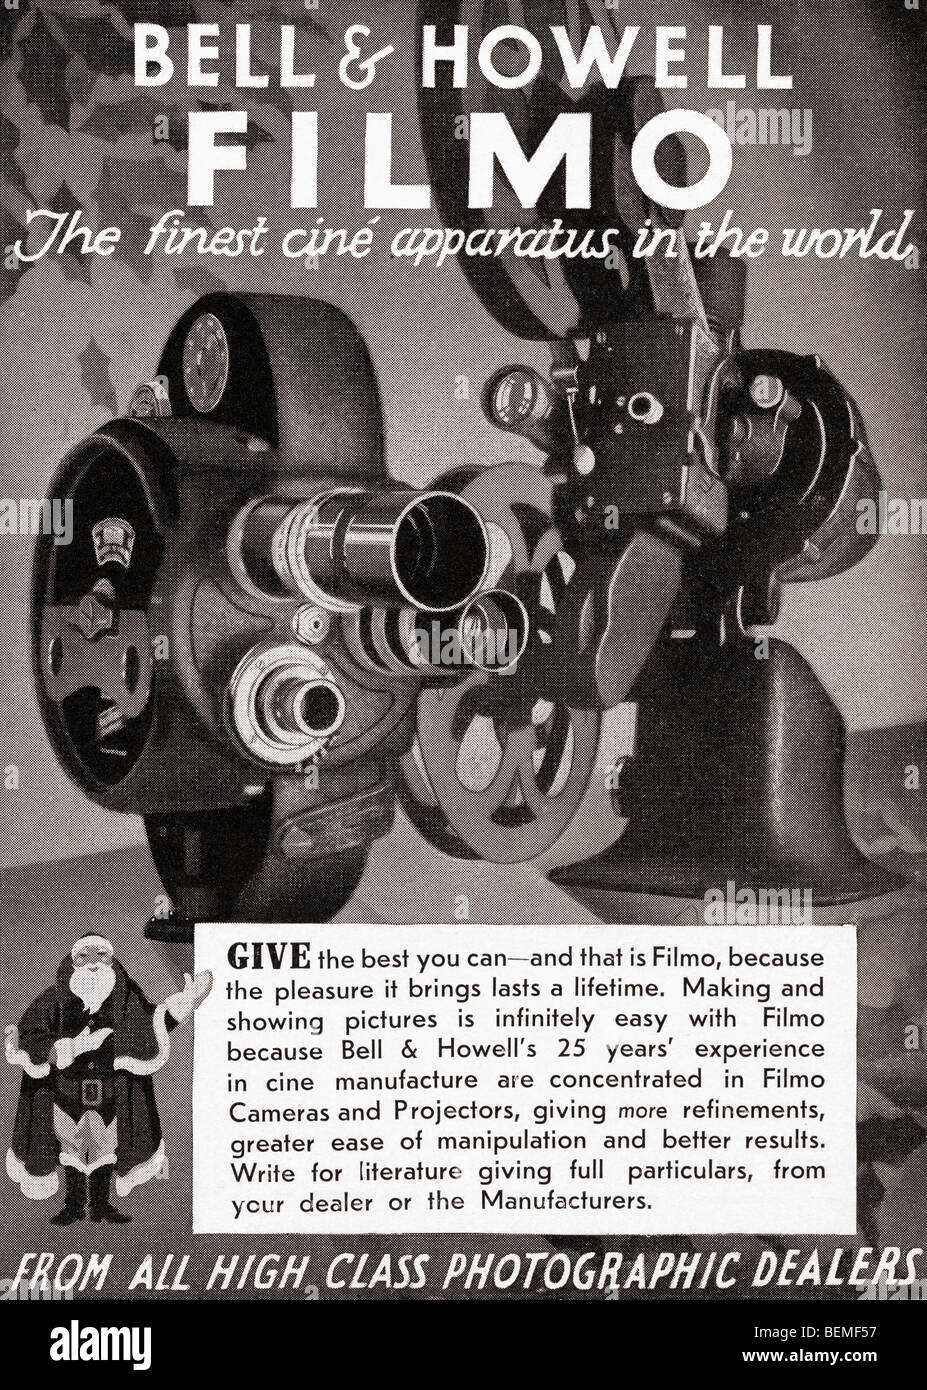 1930's advertisement for the Bell and Howell Filmo cine camera. From The Illustrated London News, Christmas - Stock Image